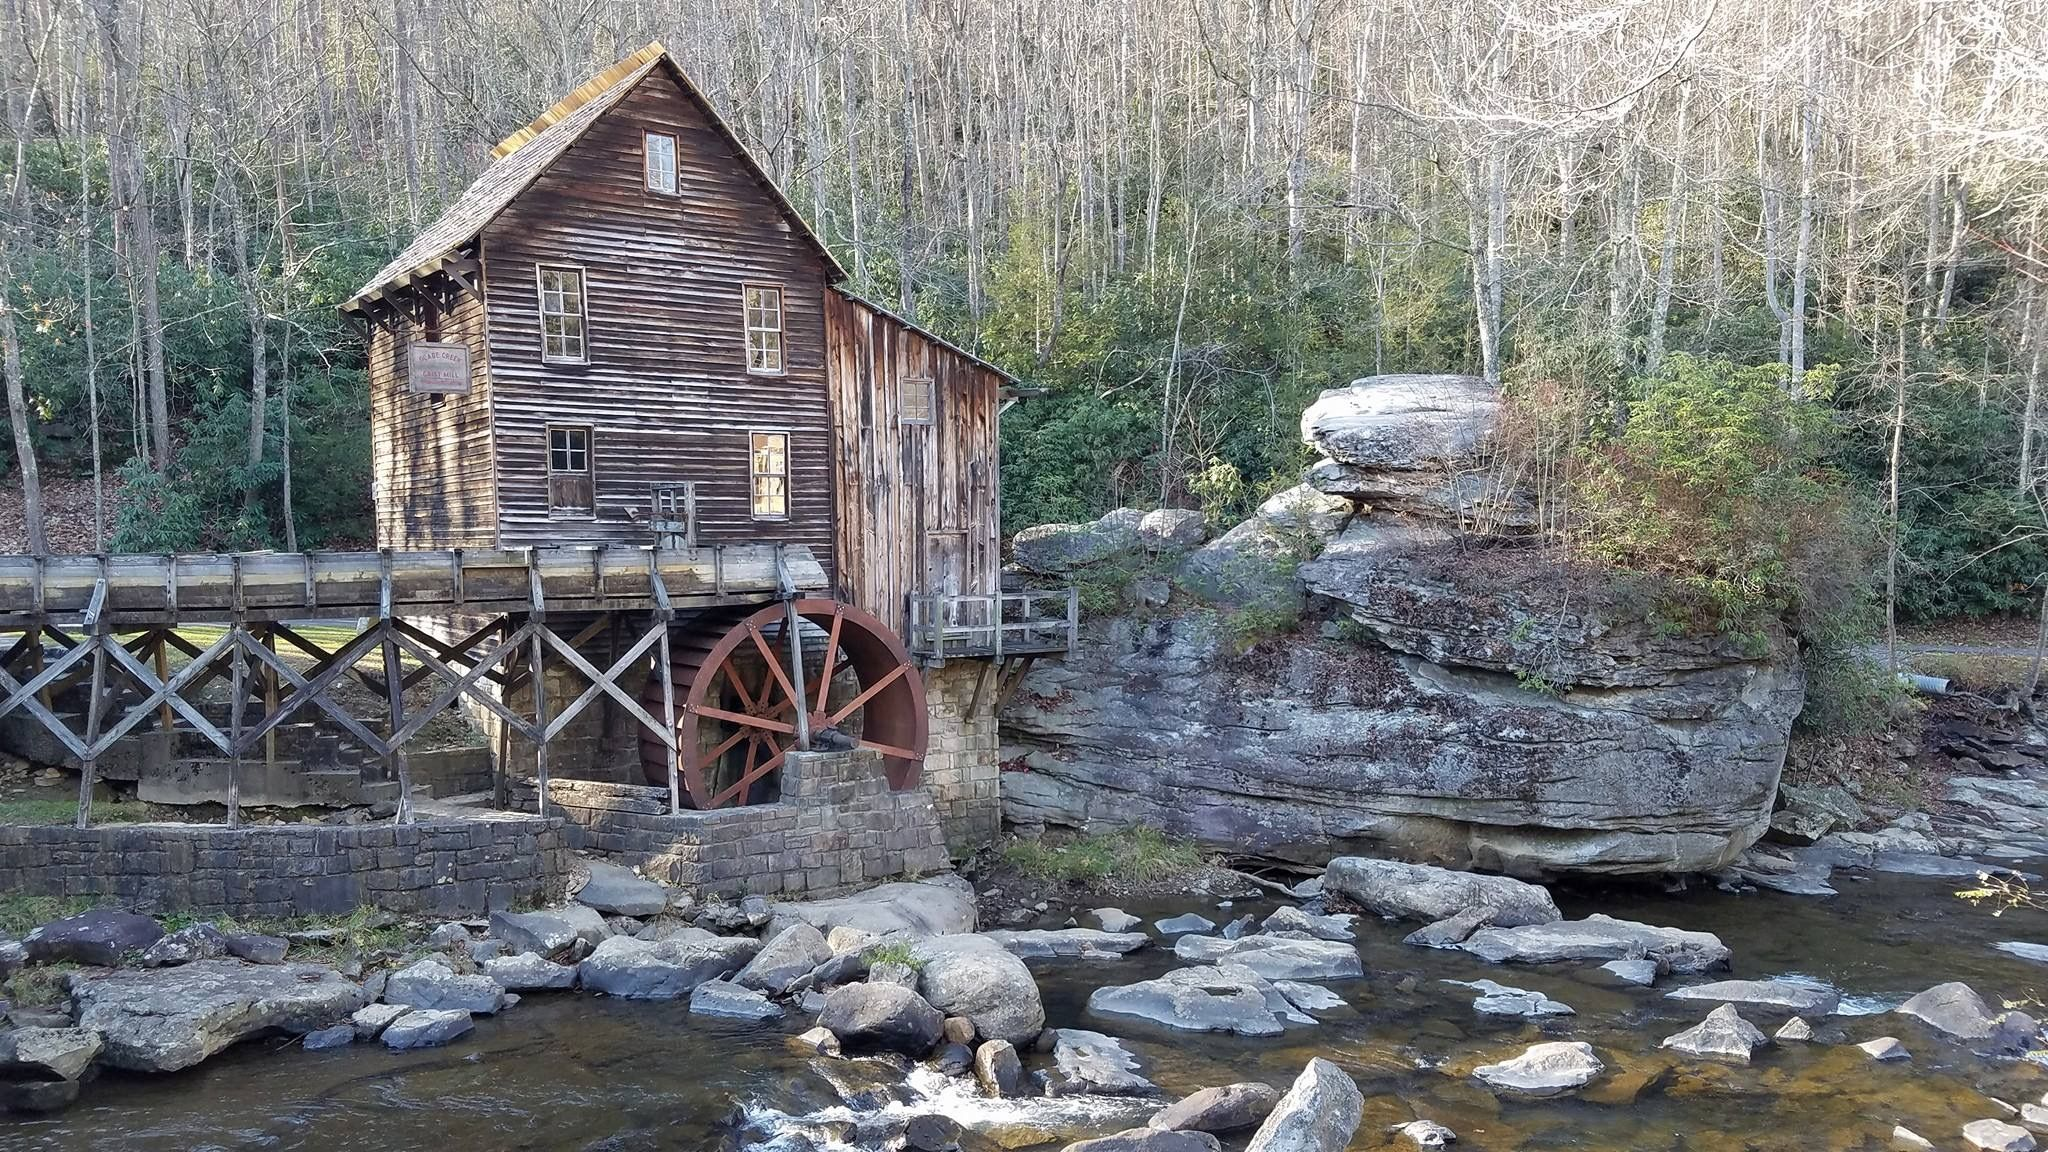 pigeon bee miss near haven cabins forge bedroom cabin tn sevierville rental dollywood